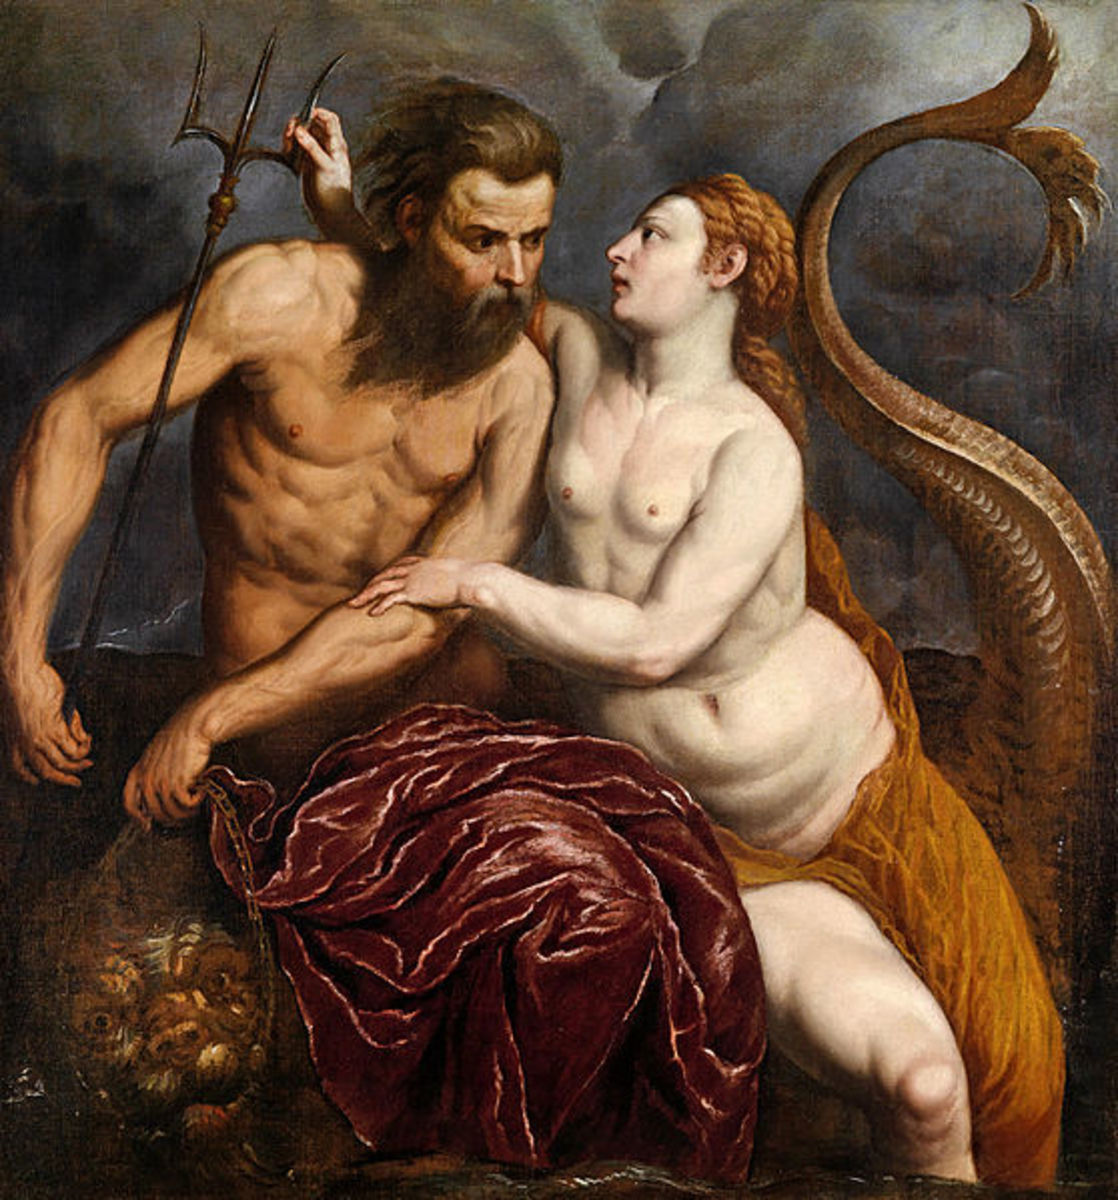 Neptune and Amphitrite by Paris Bordone (1560)